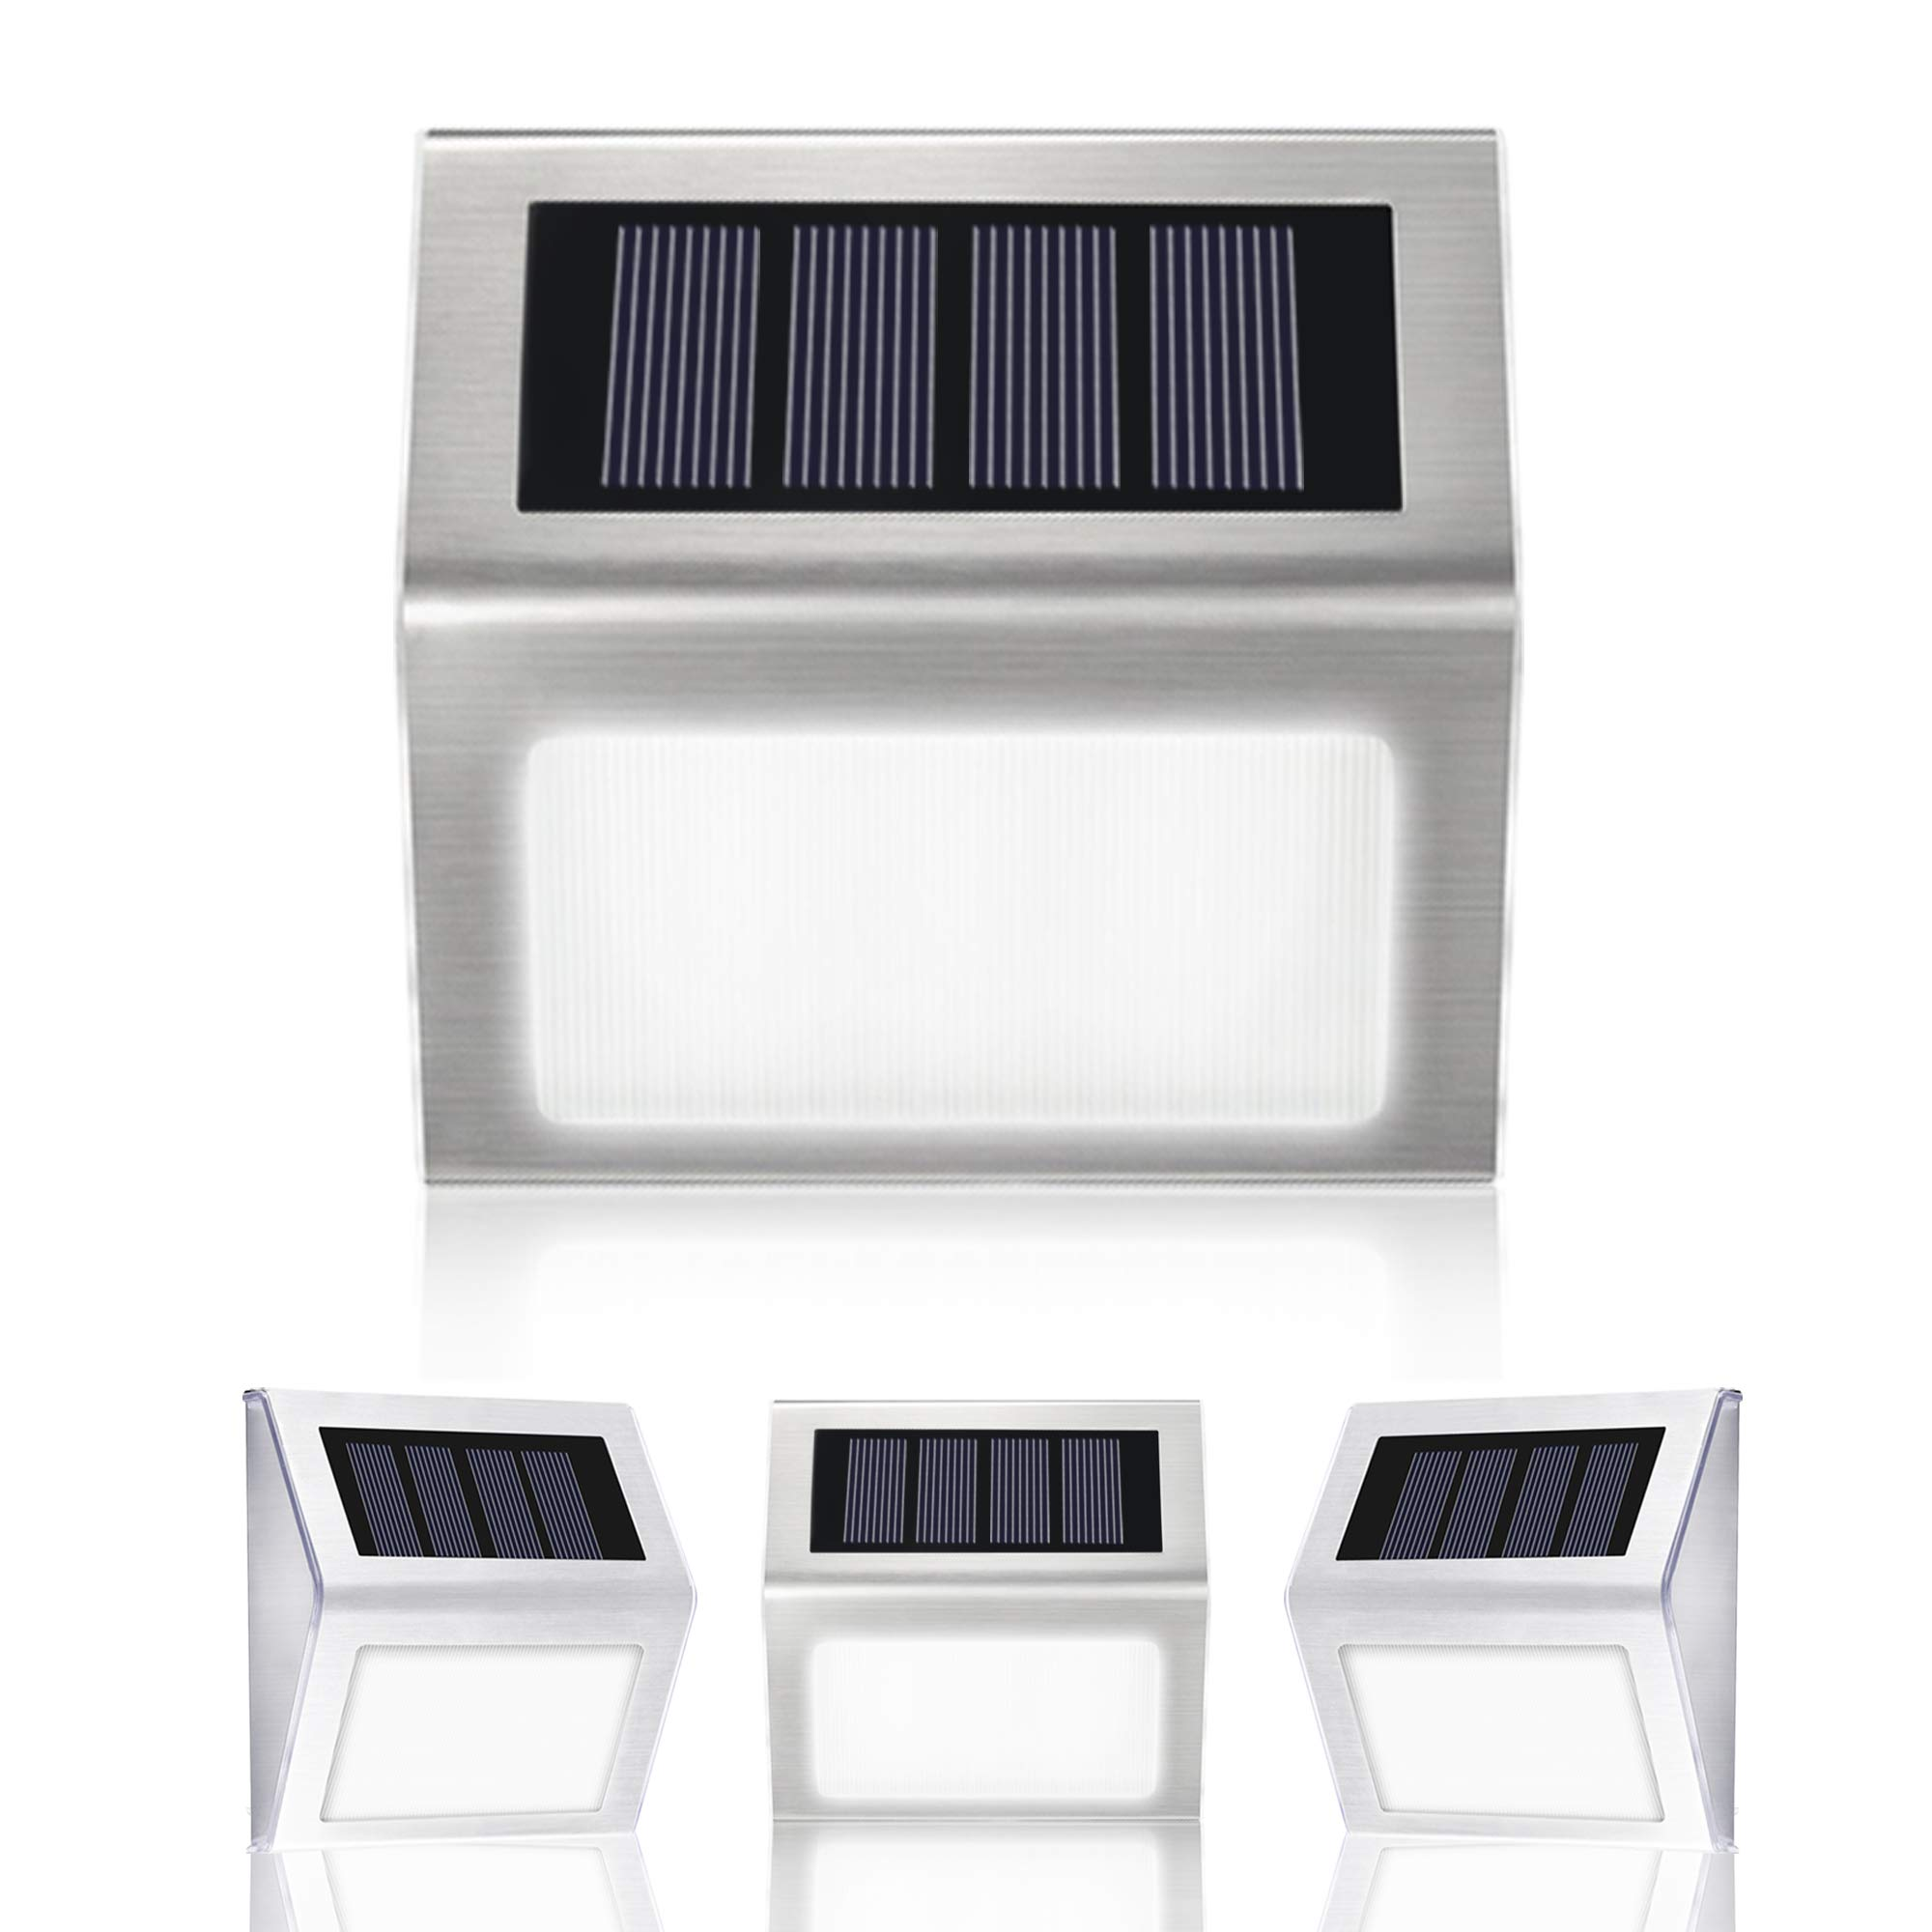 Solar Lights Outdoor Alture 3 LED Solar Stair Light Outdoor Waterproof LED Solar Powered Step Lighting for Steps Patio Deck Paths- 4 Pack